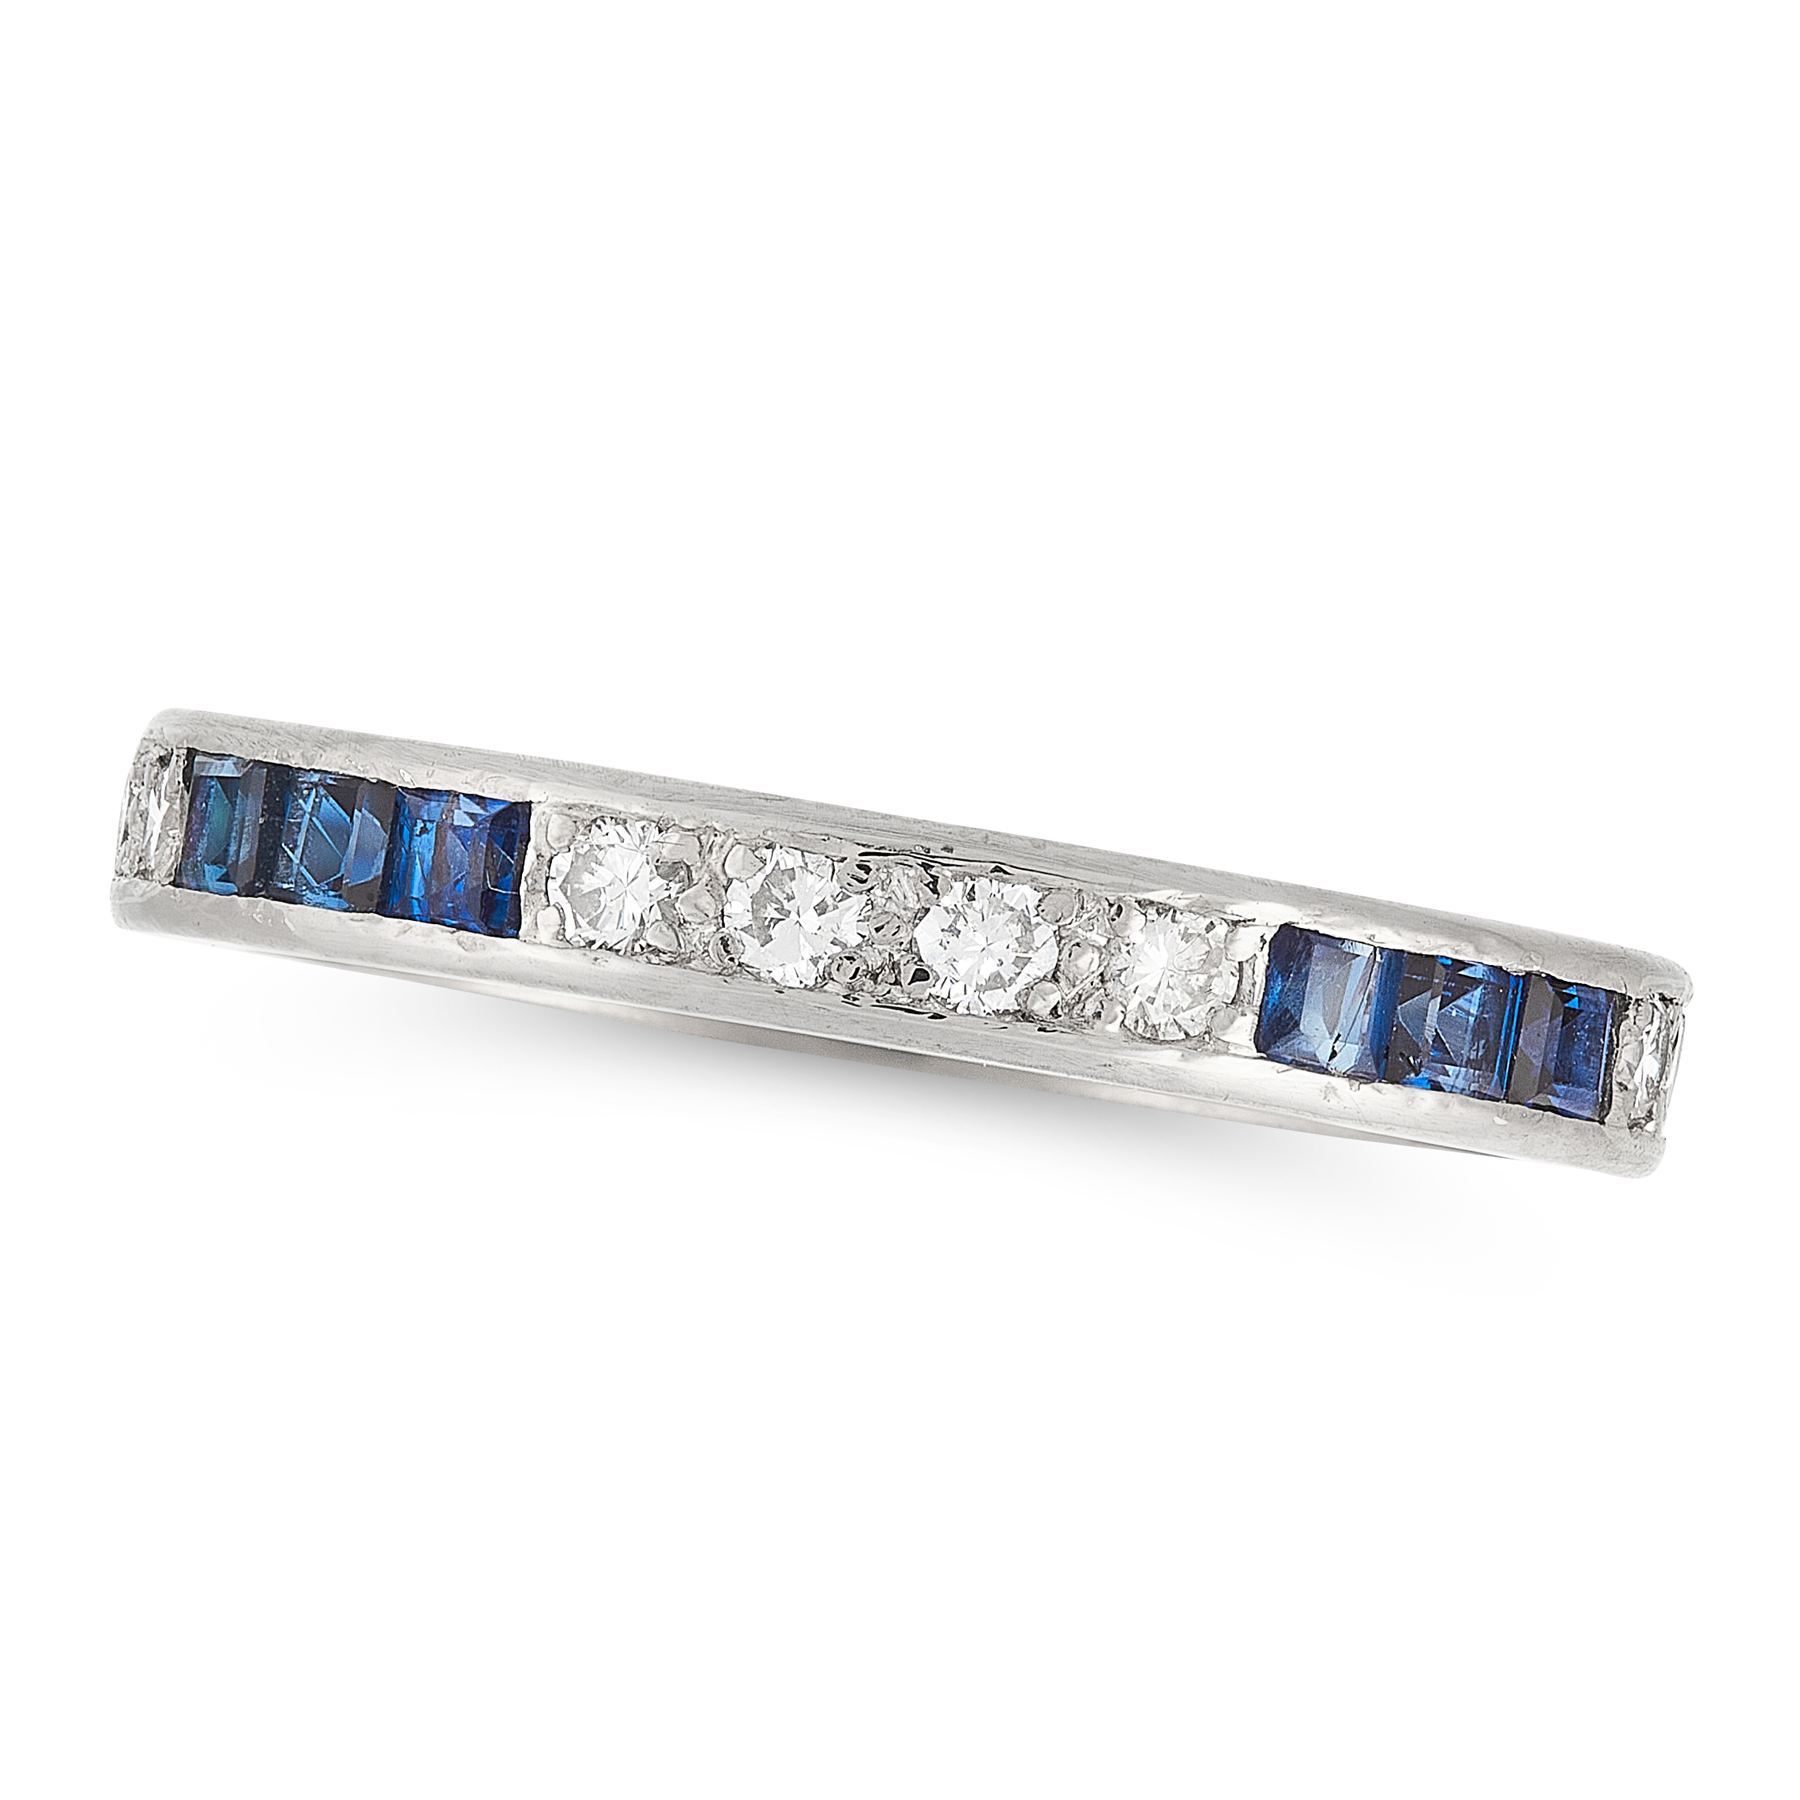 A SAPPHIRE AND DIAMOND ETERNITY RING set with alternating round cut diamonds and step cut sapphires,